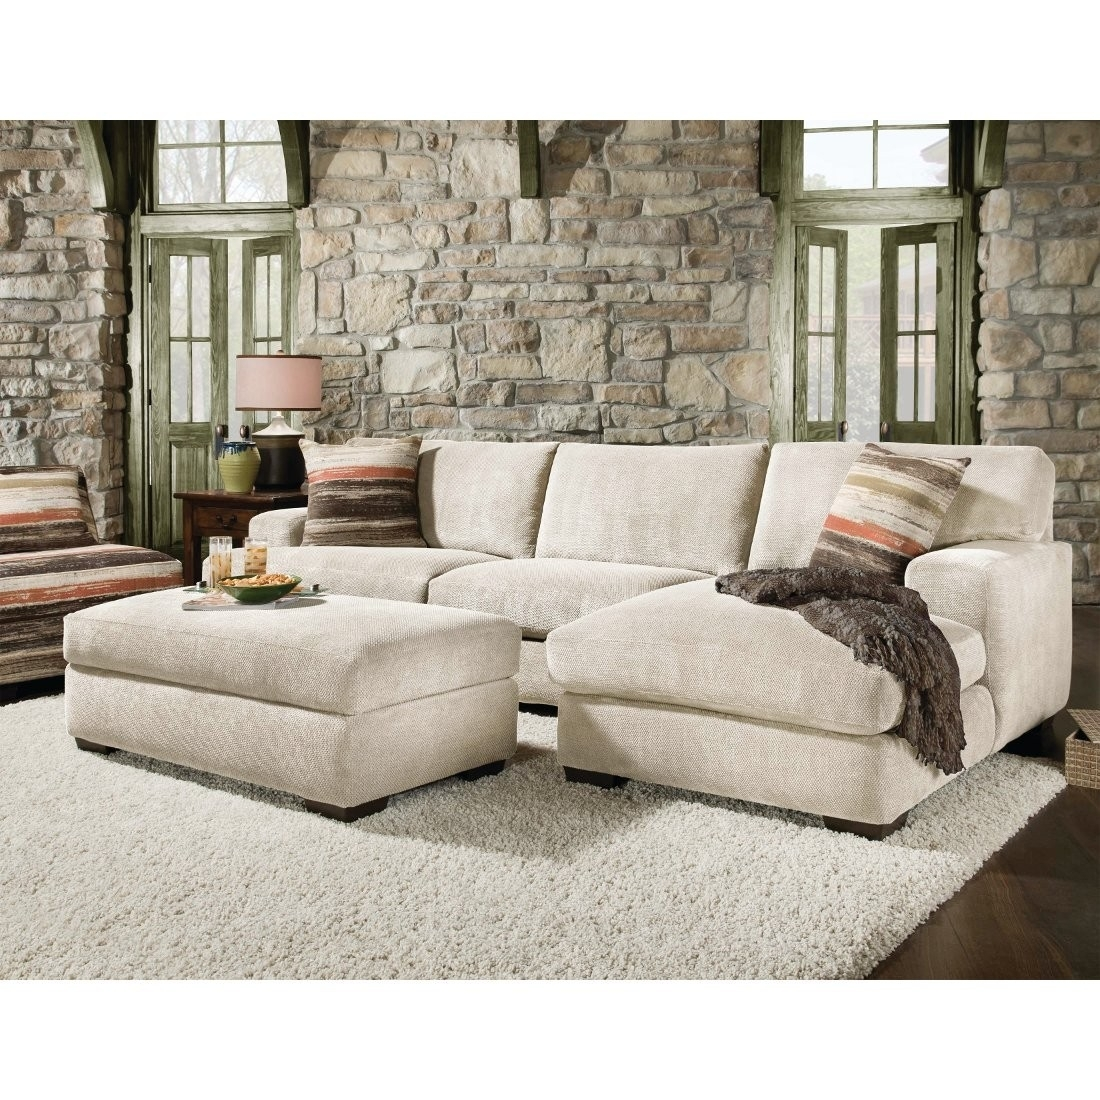 Amusing Sectional Sofa With Chaise And Ottoman 85 On Sectional In Sectional Sleeper Sofas With Ottoman (View 1 of 15)